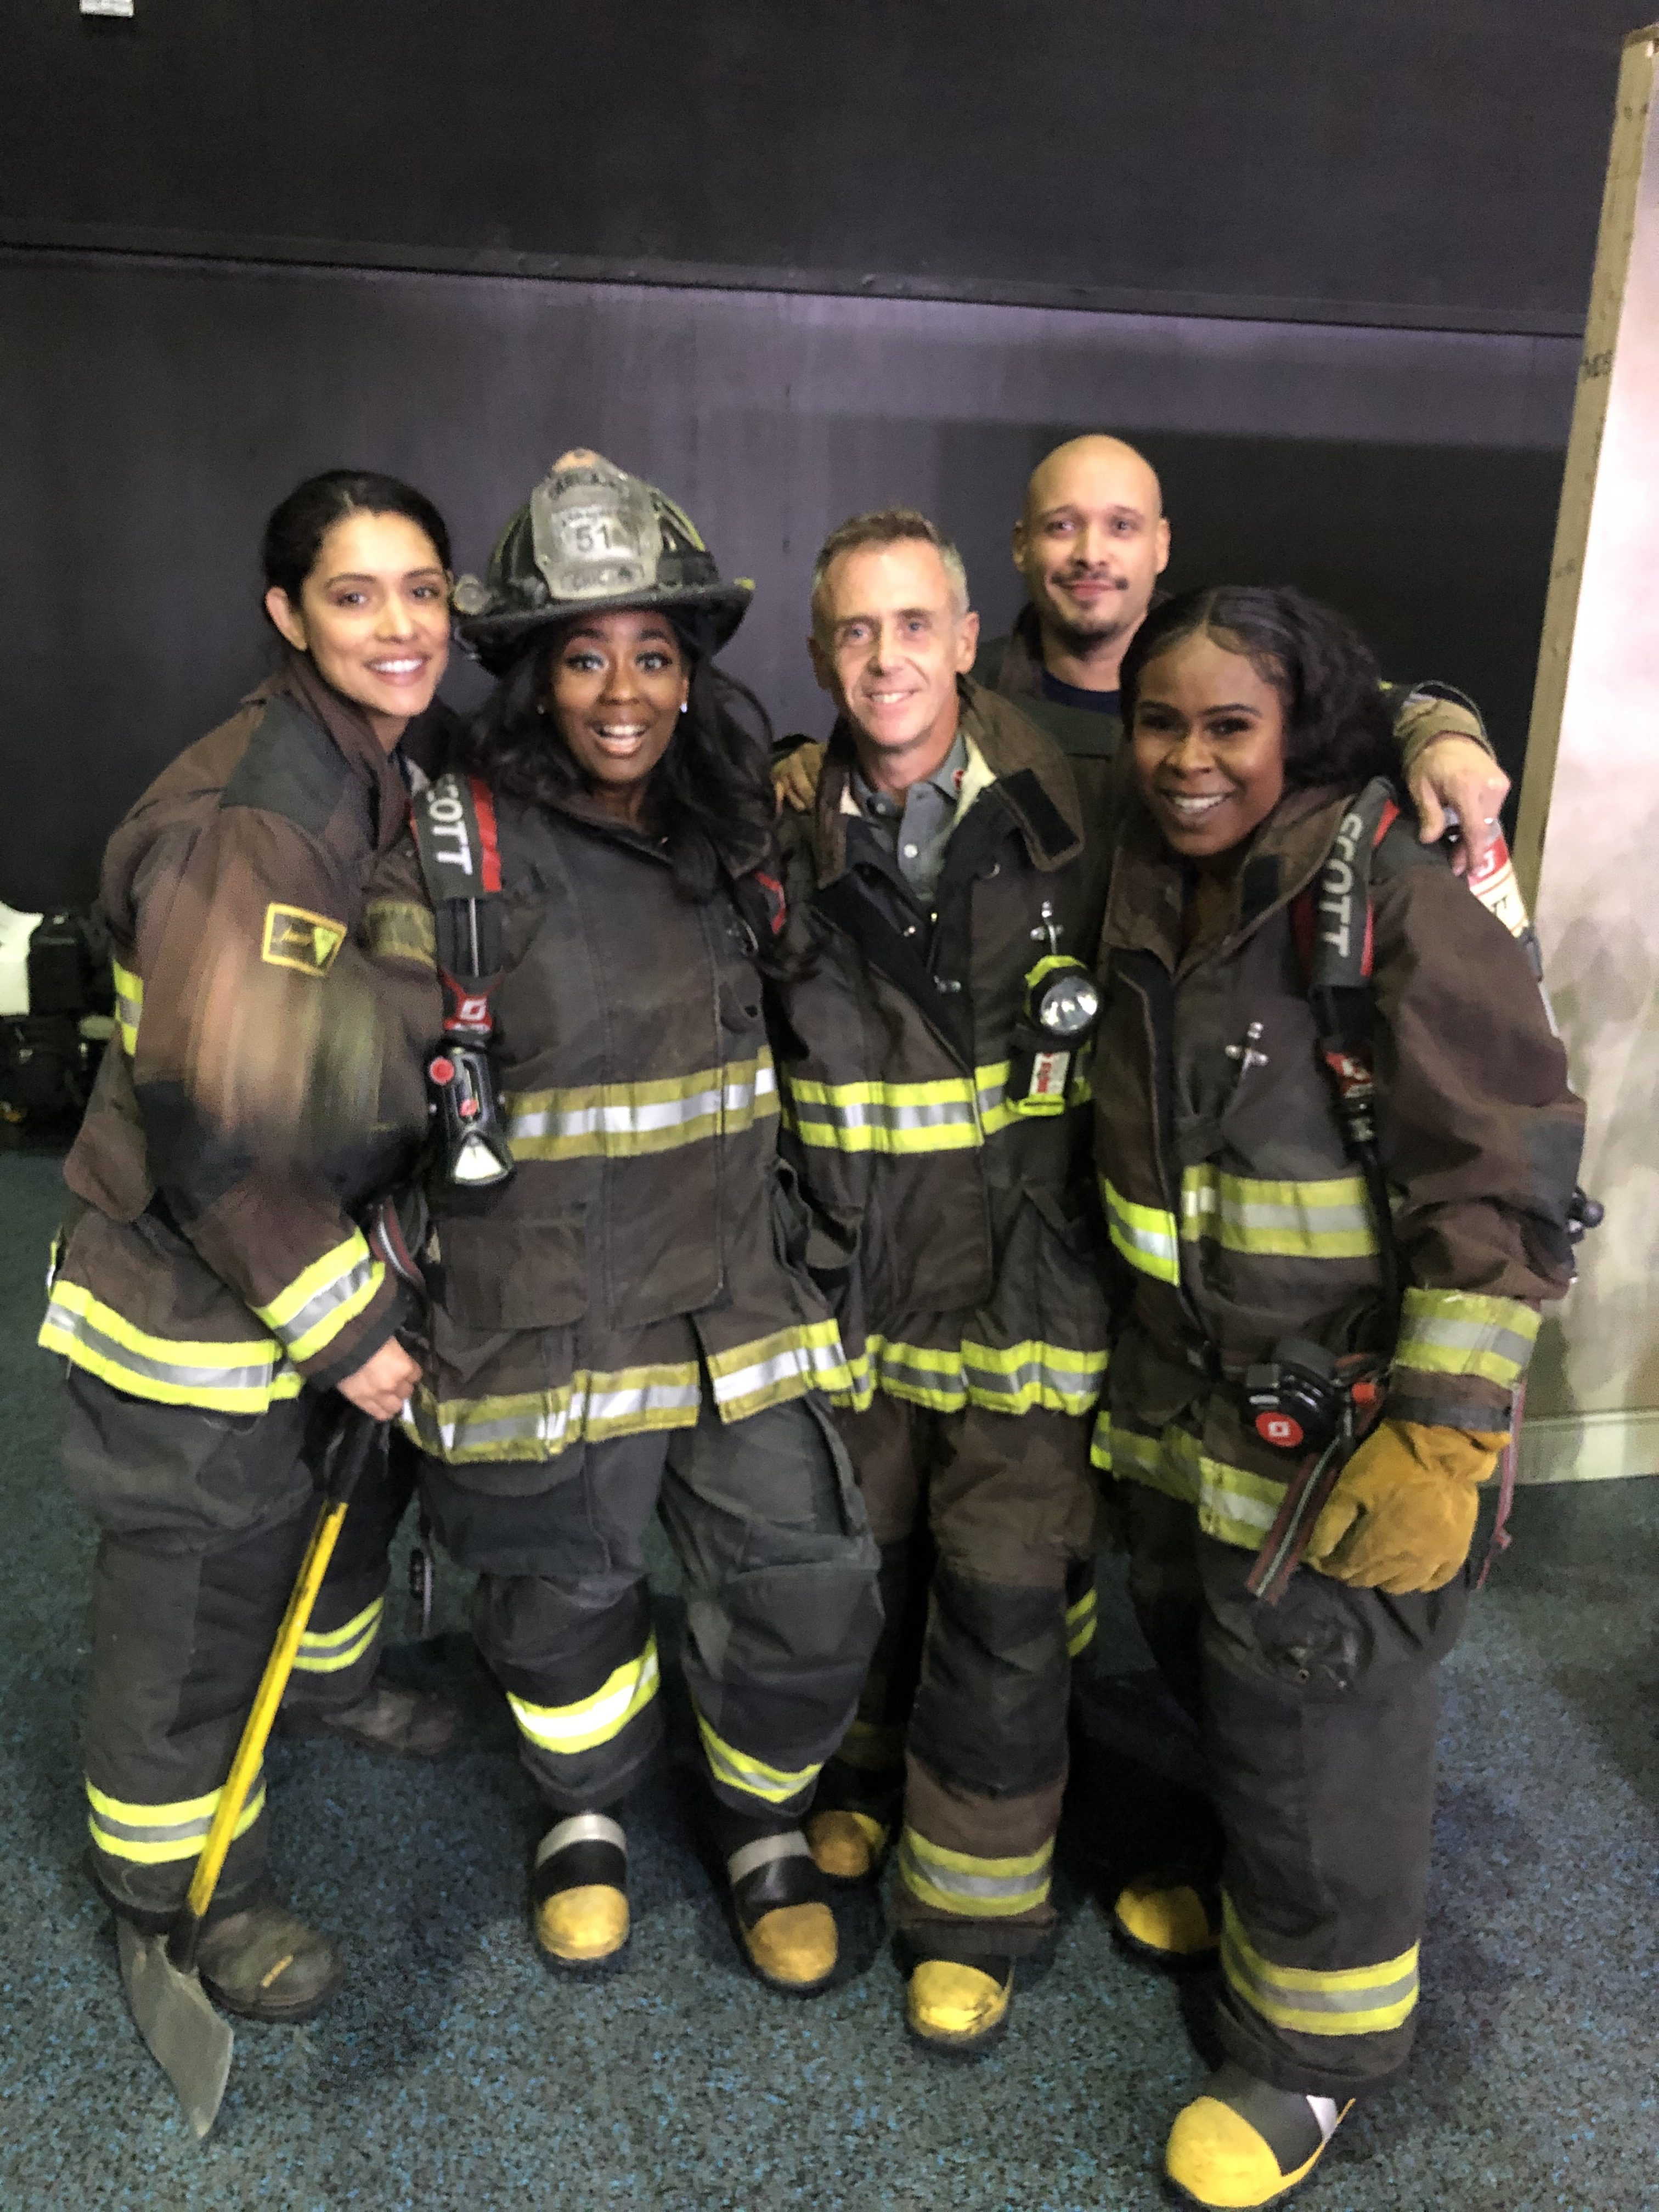 I Spent An Afternoon As A Fireman With The Cast Of Chicago Fire!